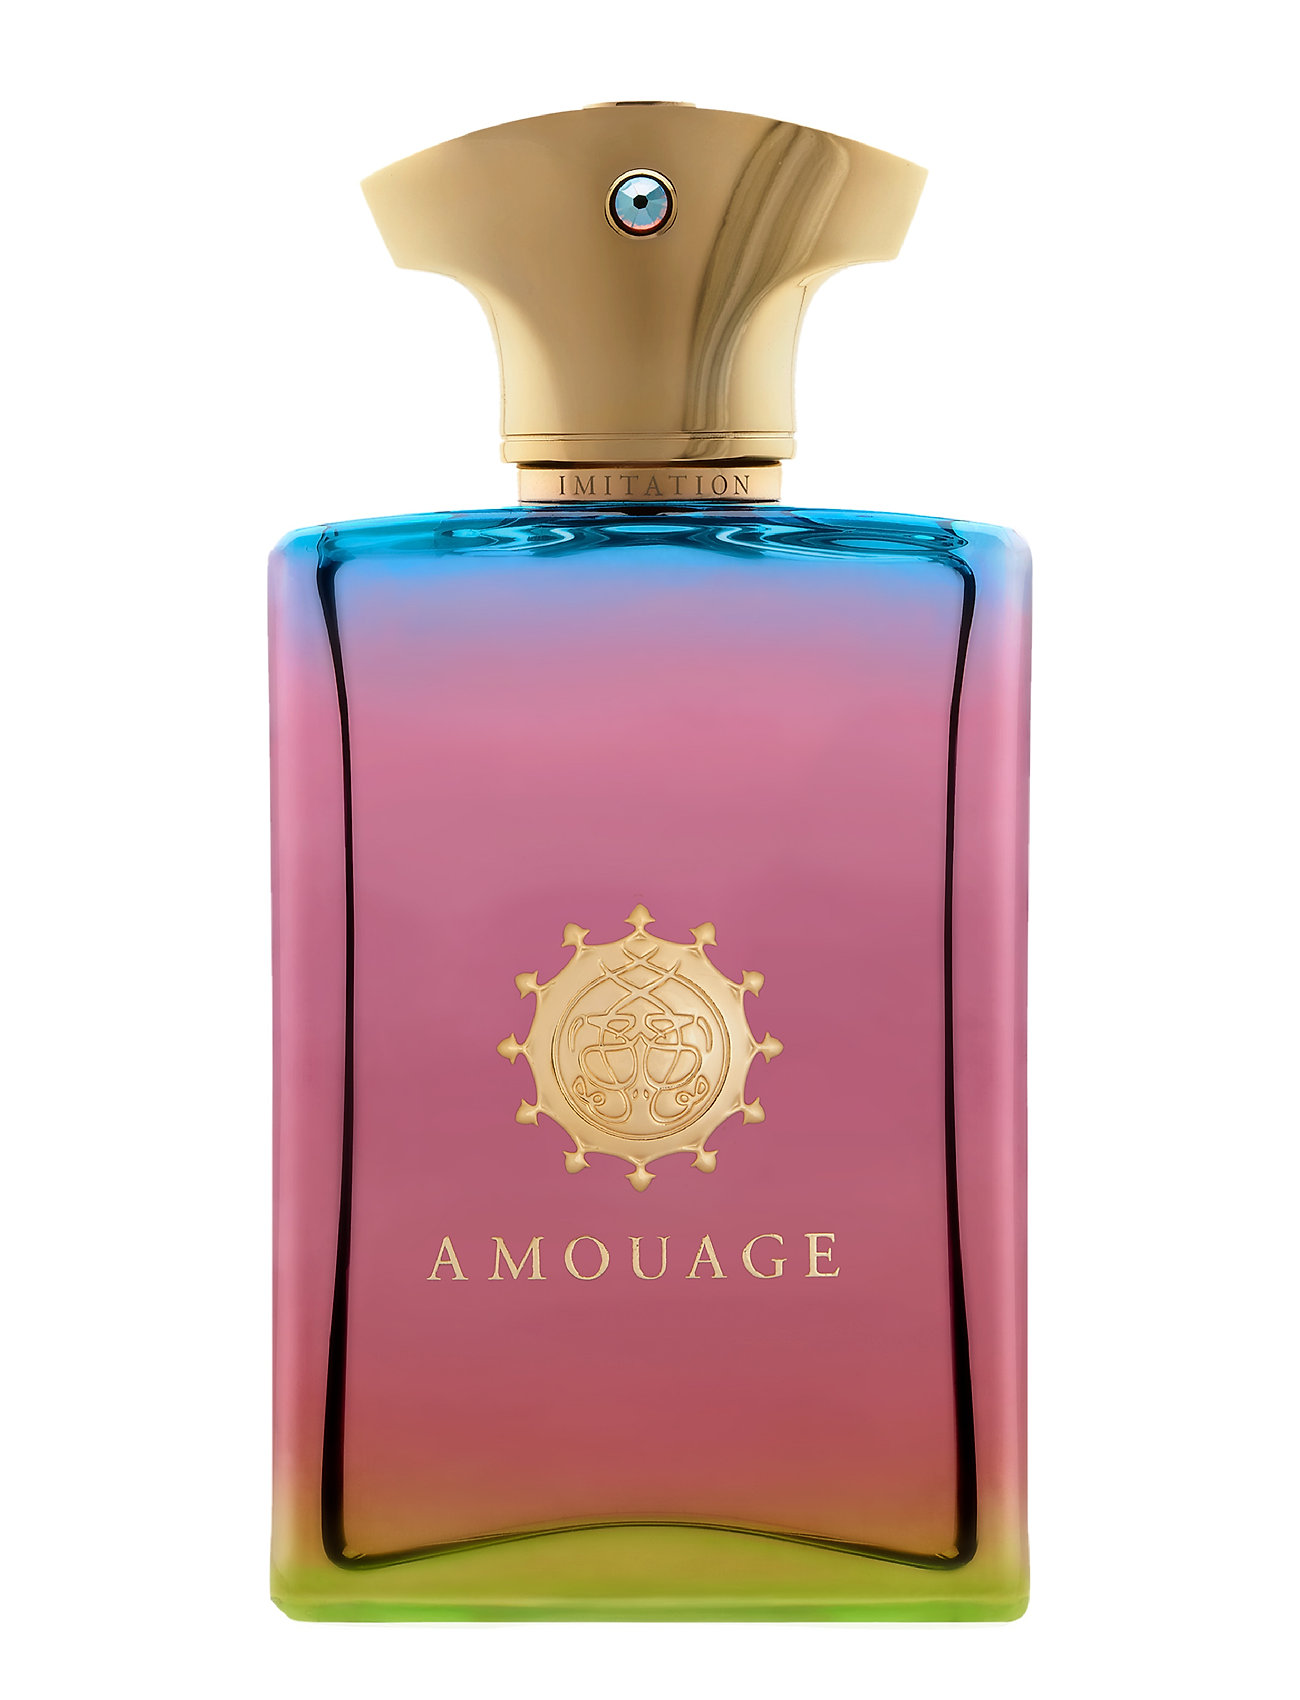 Amouage IMITATION MEN - CLEAR